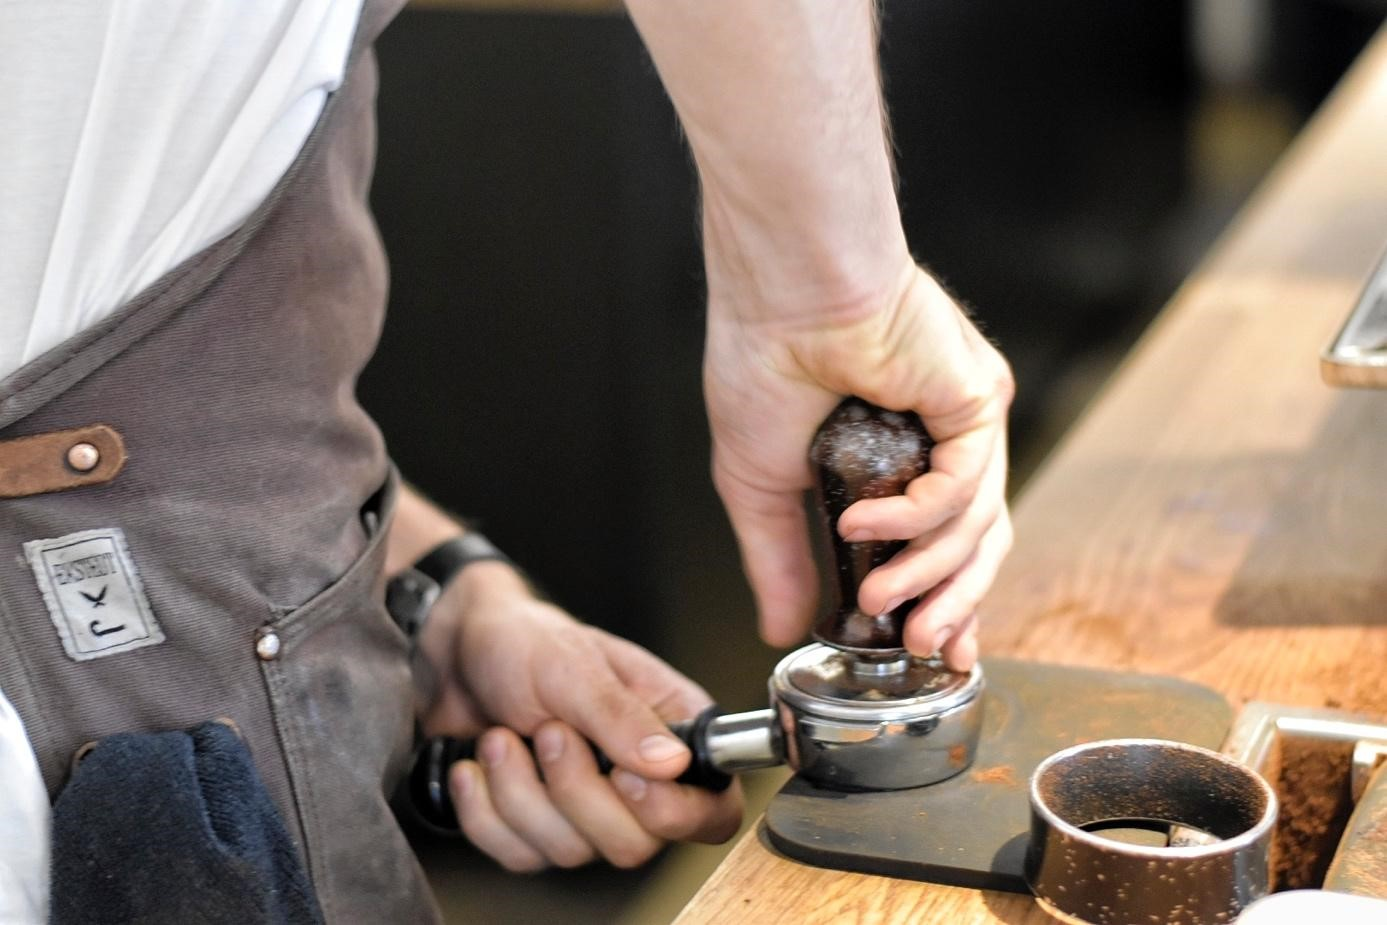 Barista tamping in the portafilter